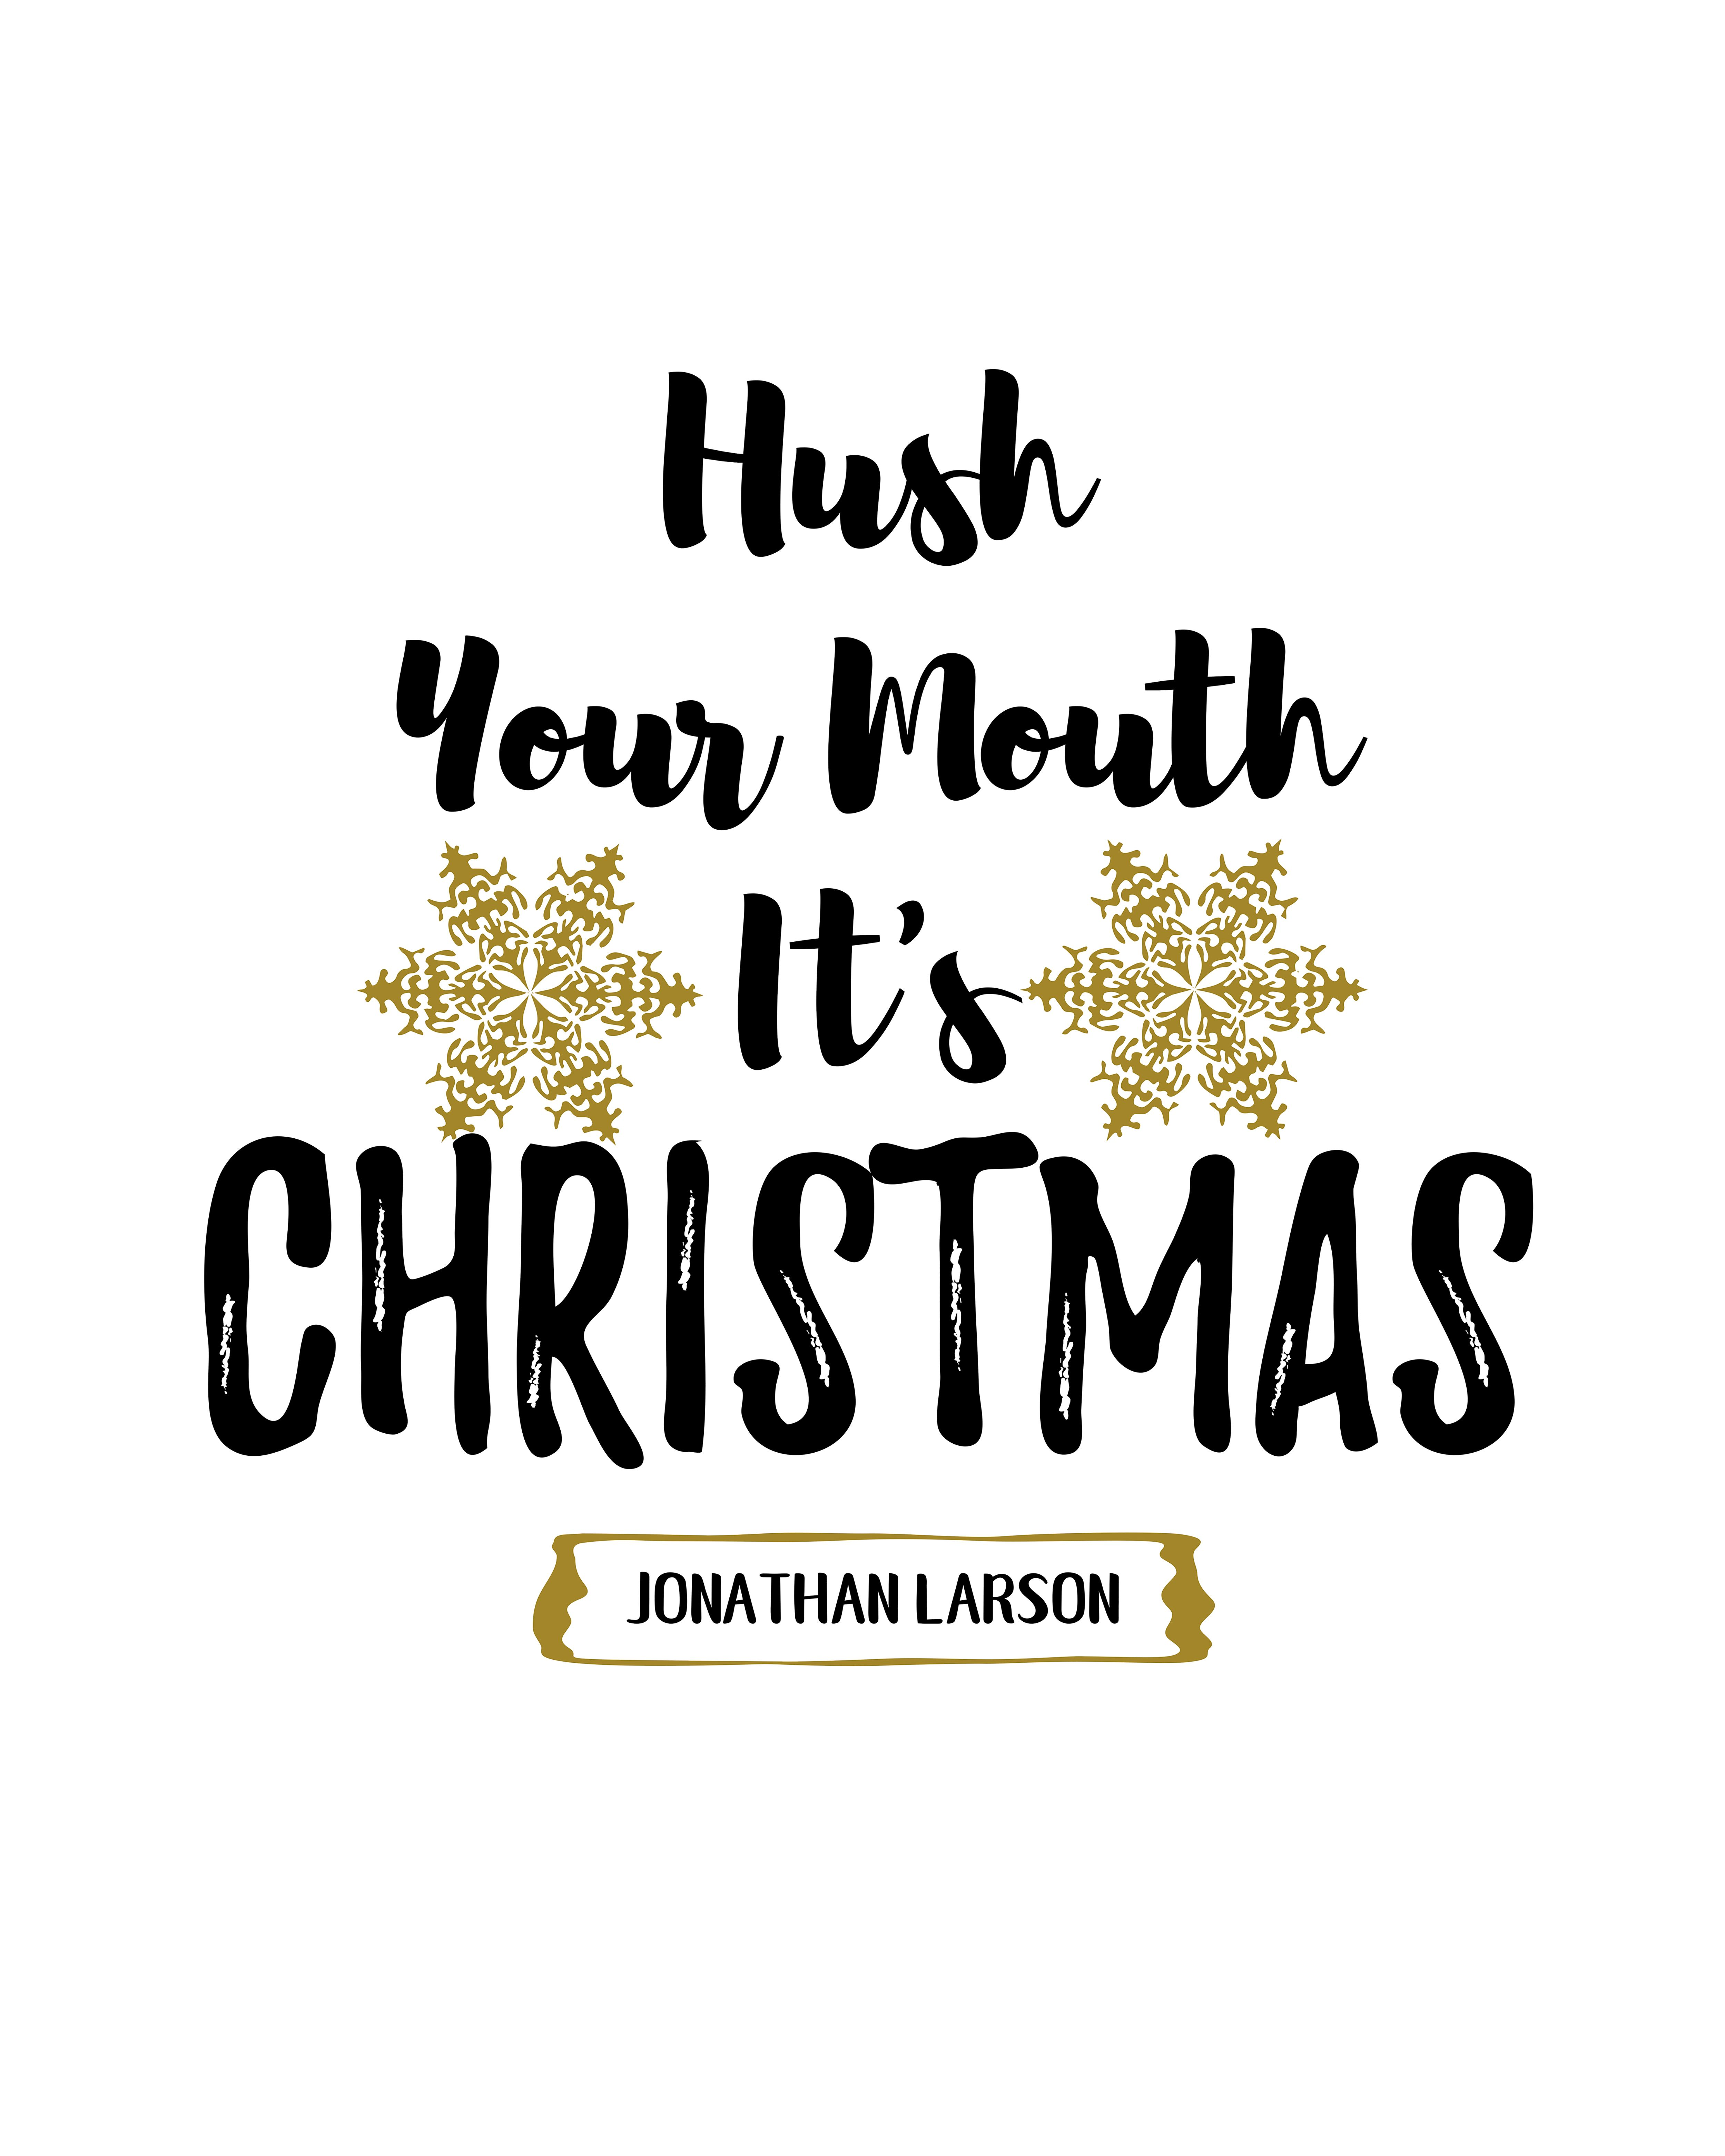 Rent Quotes Hush Your Mouth Its Christmas  Rent Quote  Jonathan Larson